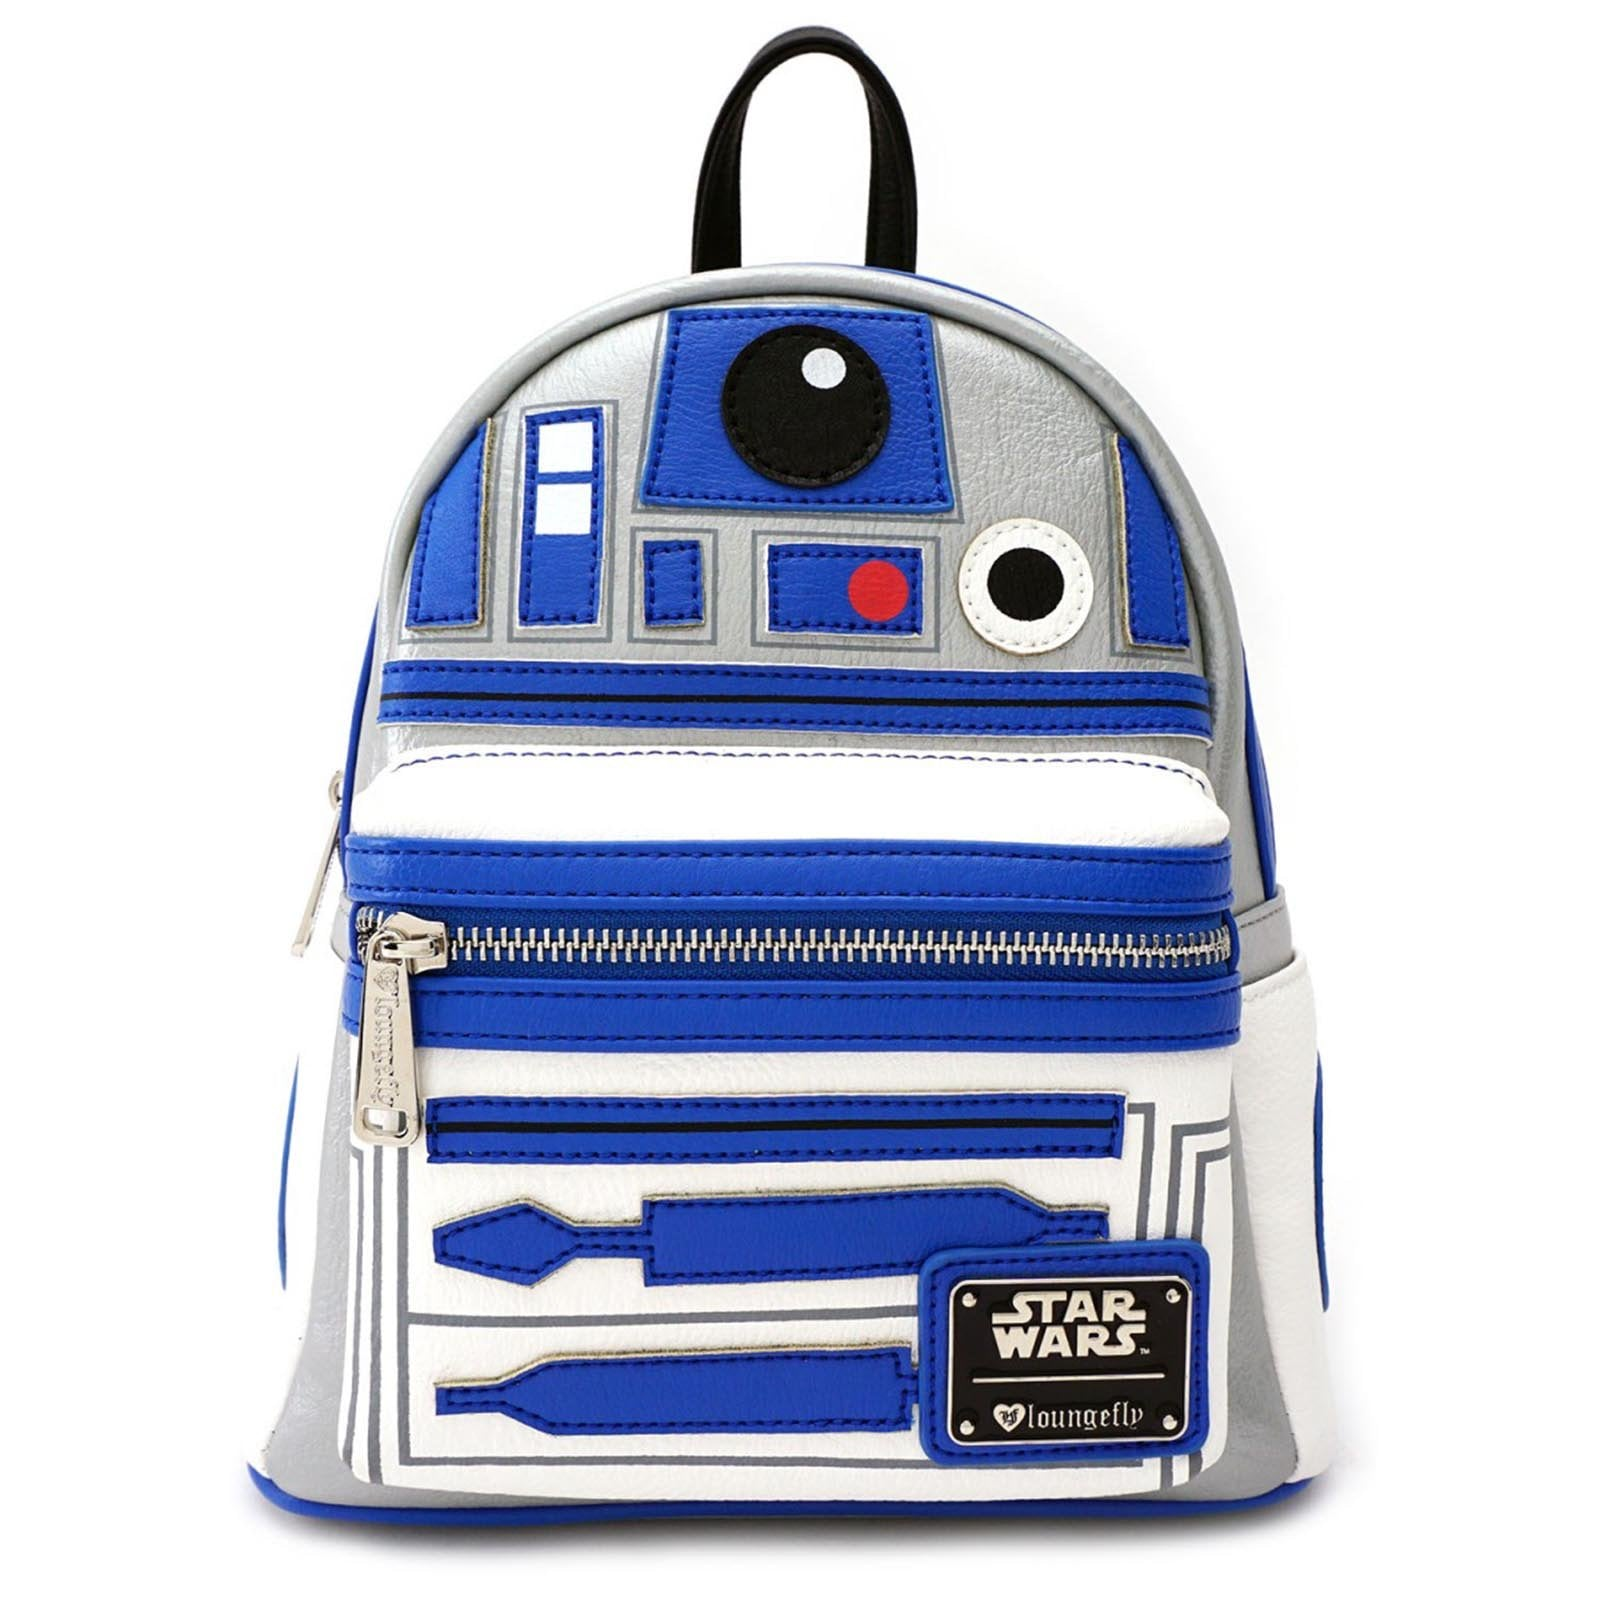 c123f595d30 Loungefly Star Wars R2-D2 Applique Mini Backpack